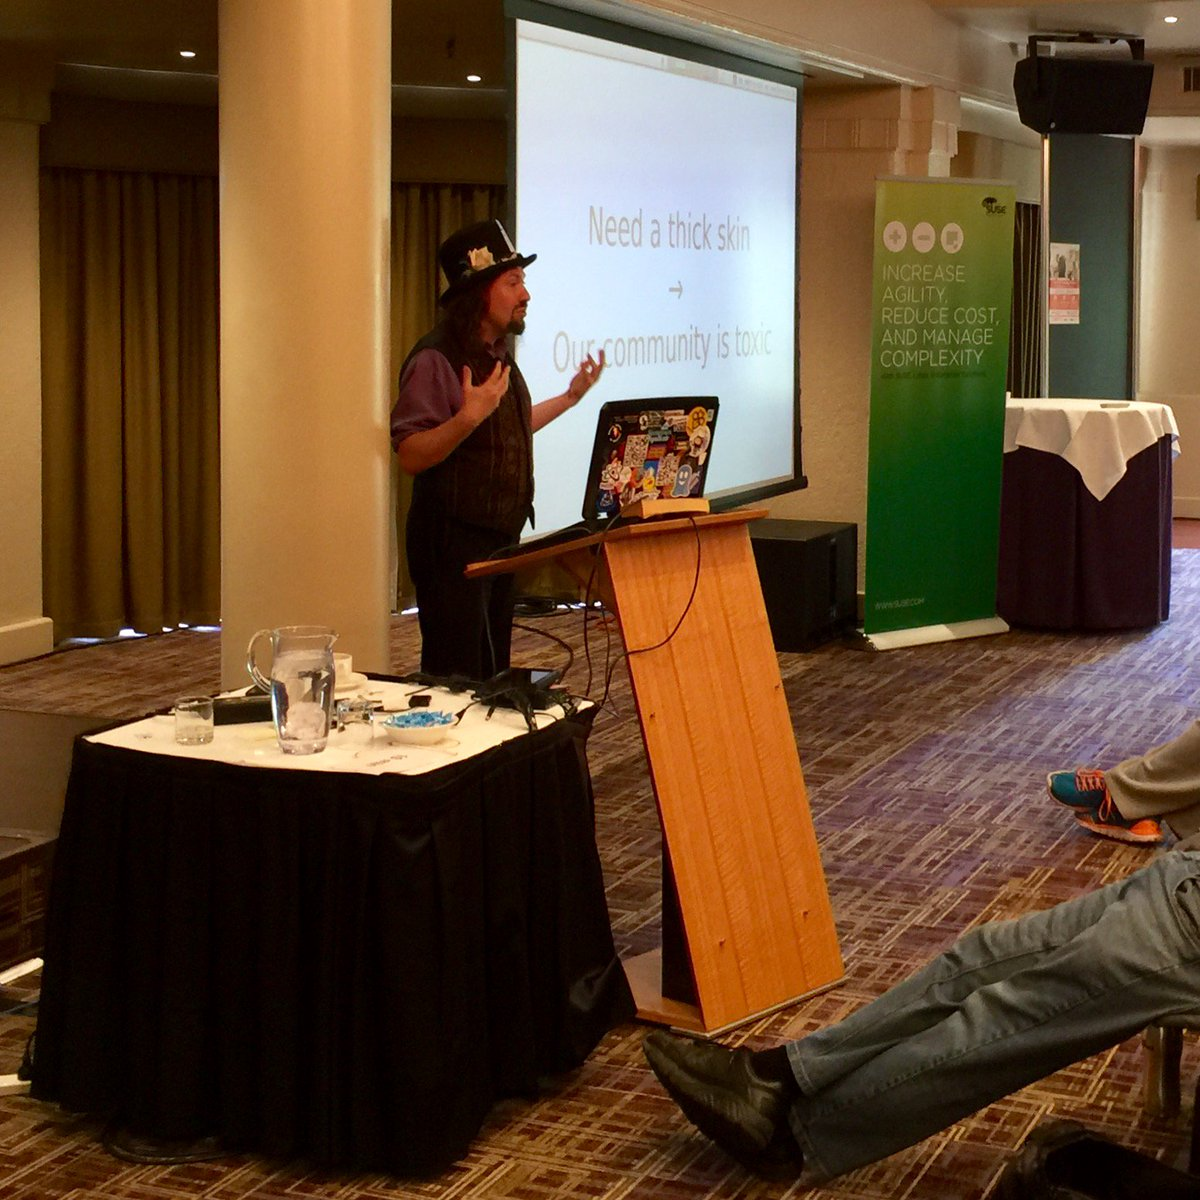 """When you say 'you need a thick skin' I hear 'our community is toxic.'"" – @pjf #osdc15 https://t.co/eV1QqWDFRq"